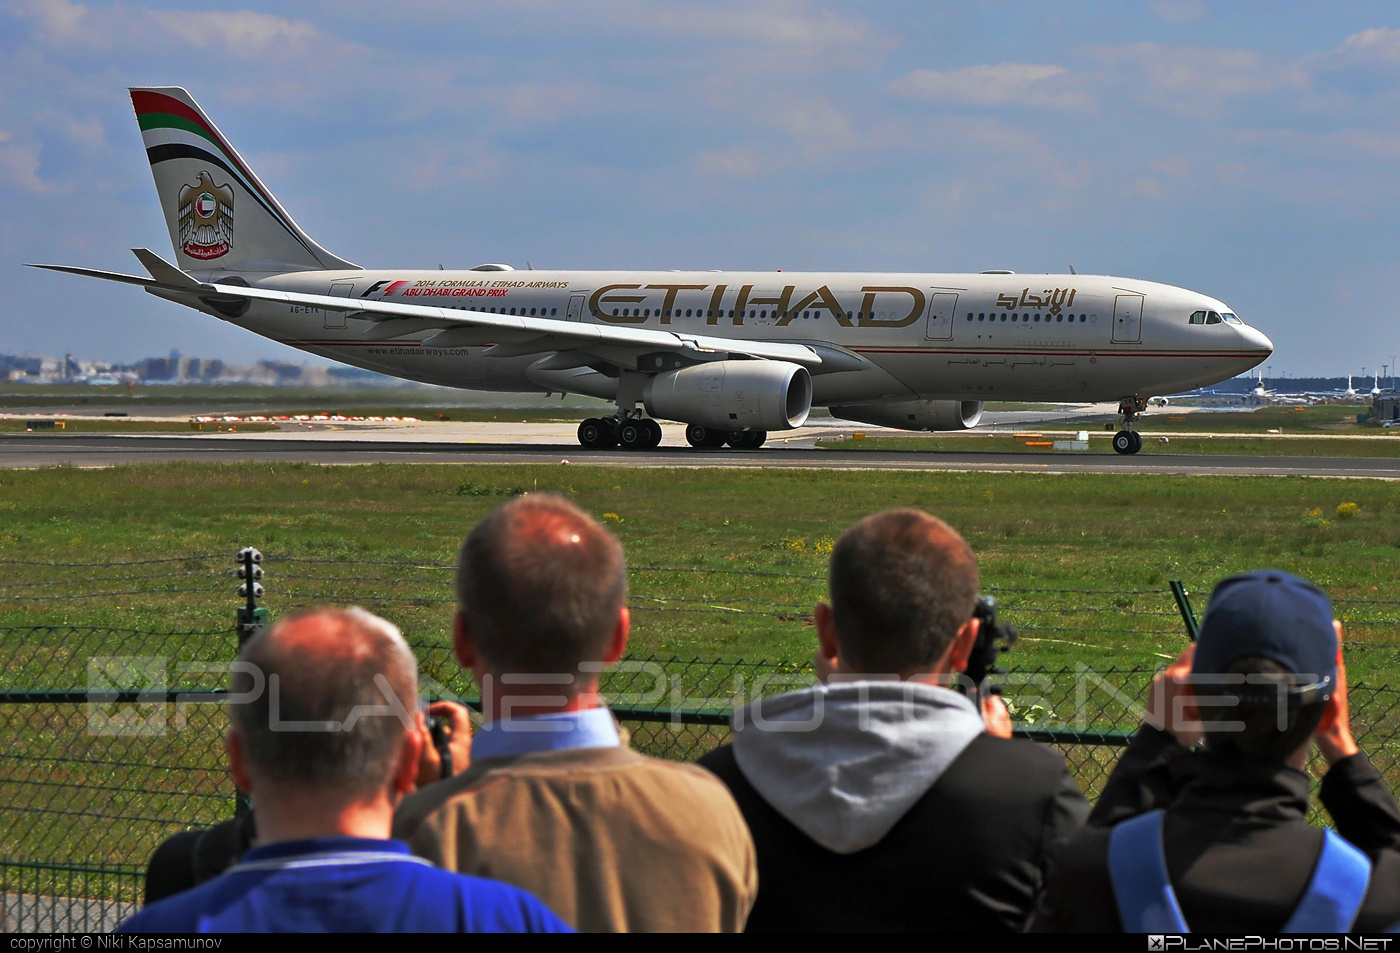 Airbus A330-243 - A6-EYK operated by Etihad Airways #a330 #a330family #airbus #airbus330 #etihad #etihadairways